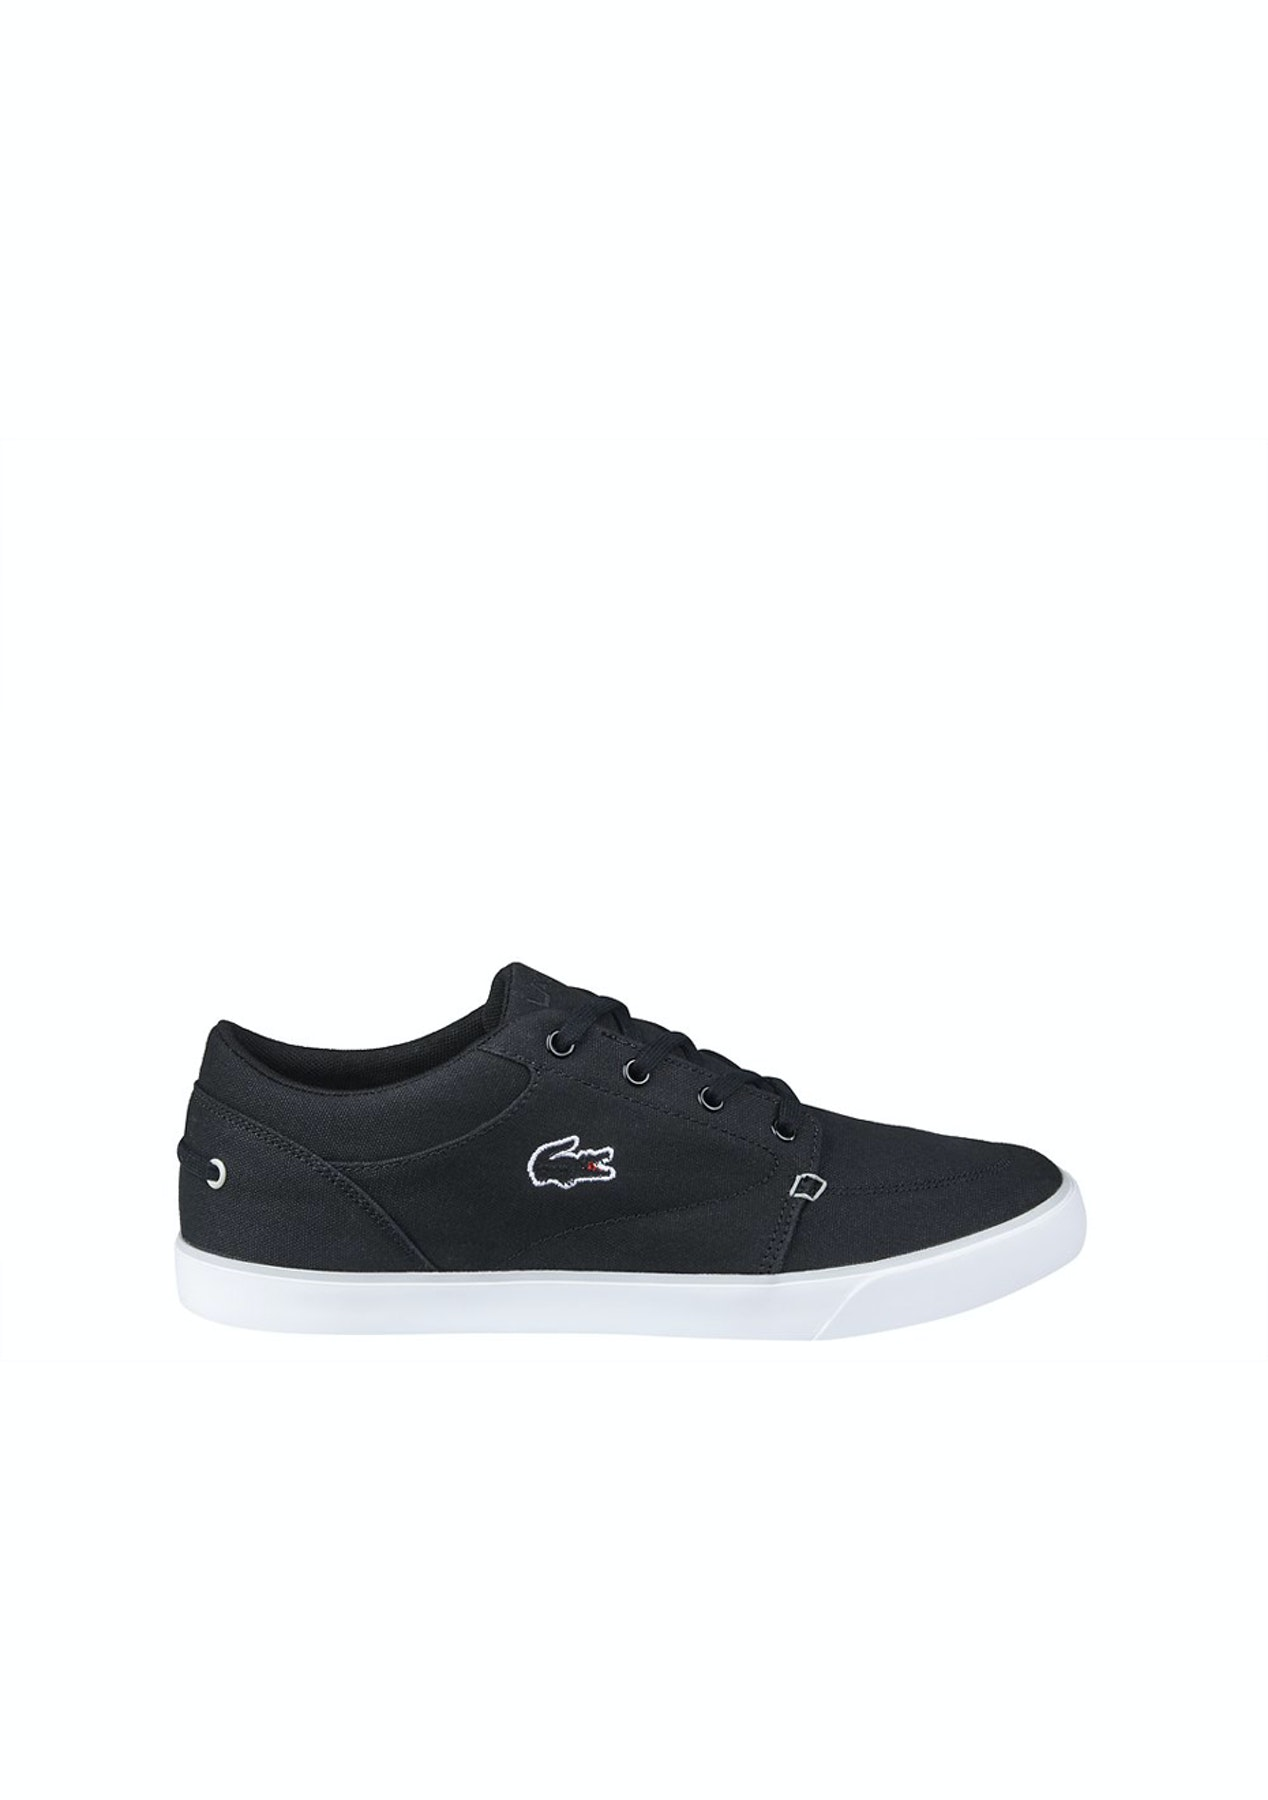 4ff8a93b8 Lacoste - Mens Bayliss 316 1 Black Black - Garage Sale Mens - Onceit